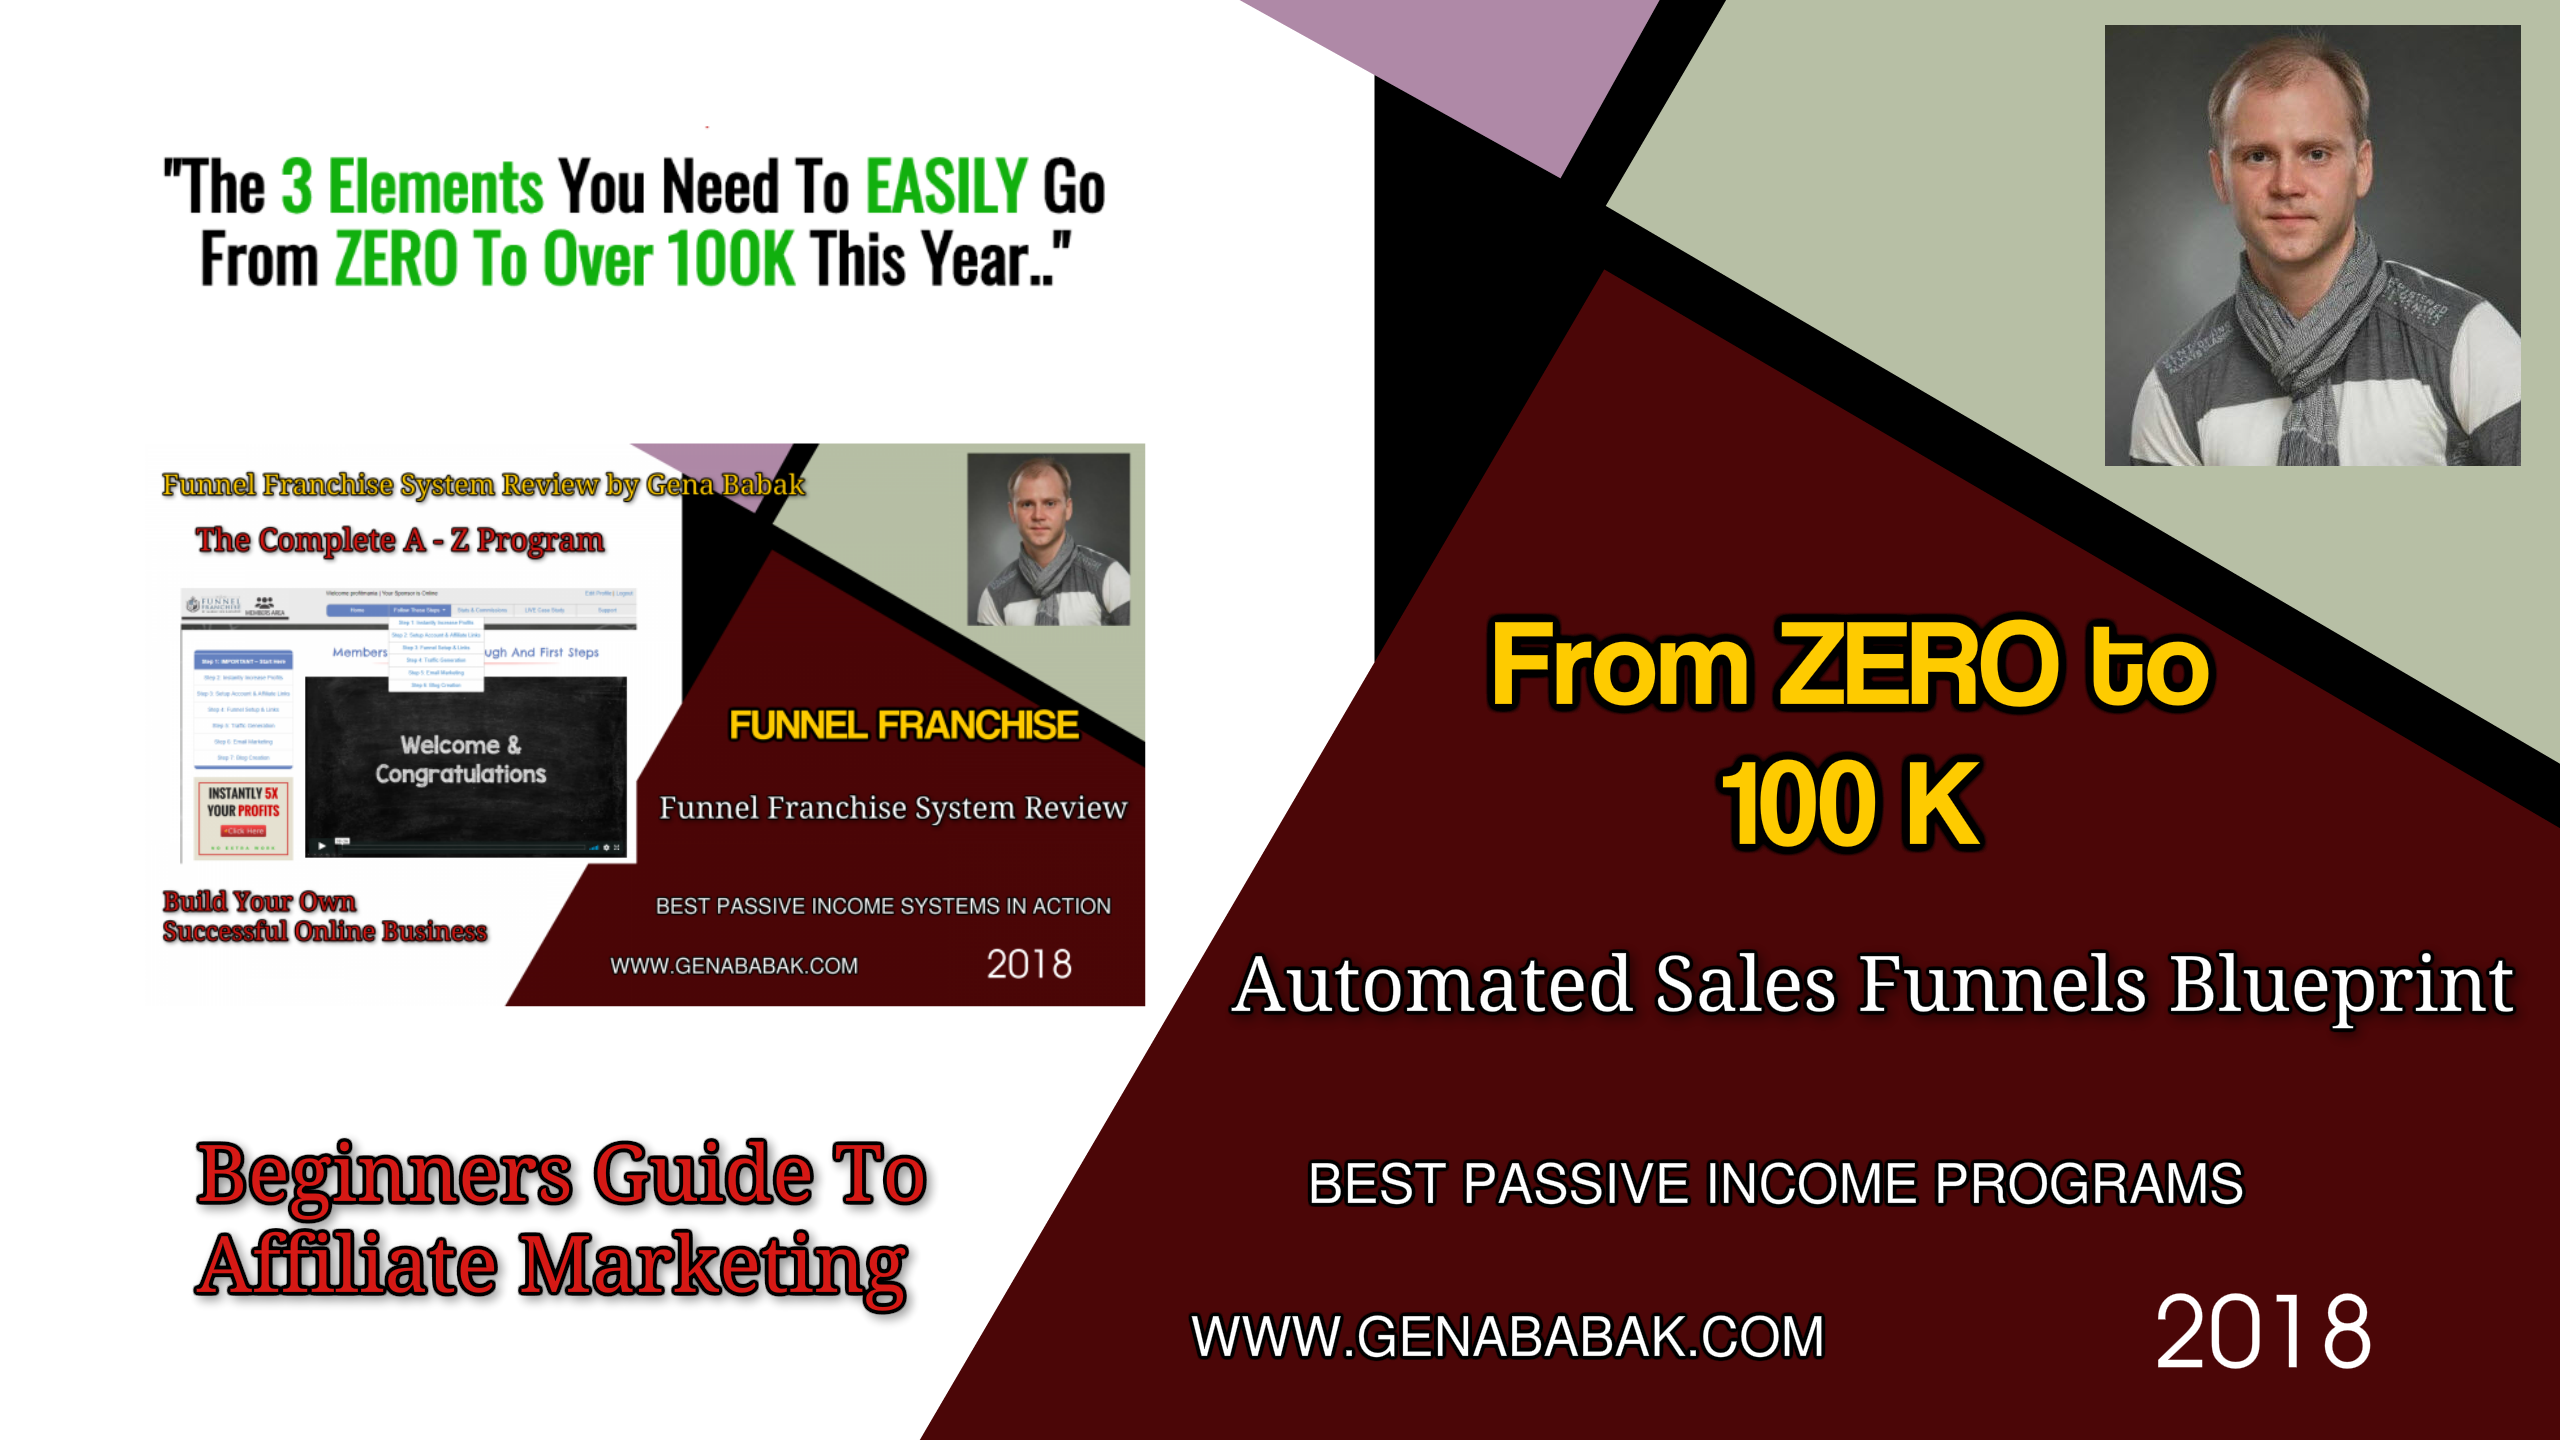 Affiliate marketing: From zero to 100 k in one year - beginners guide to affiliate marketing